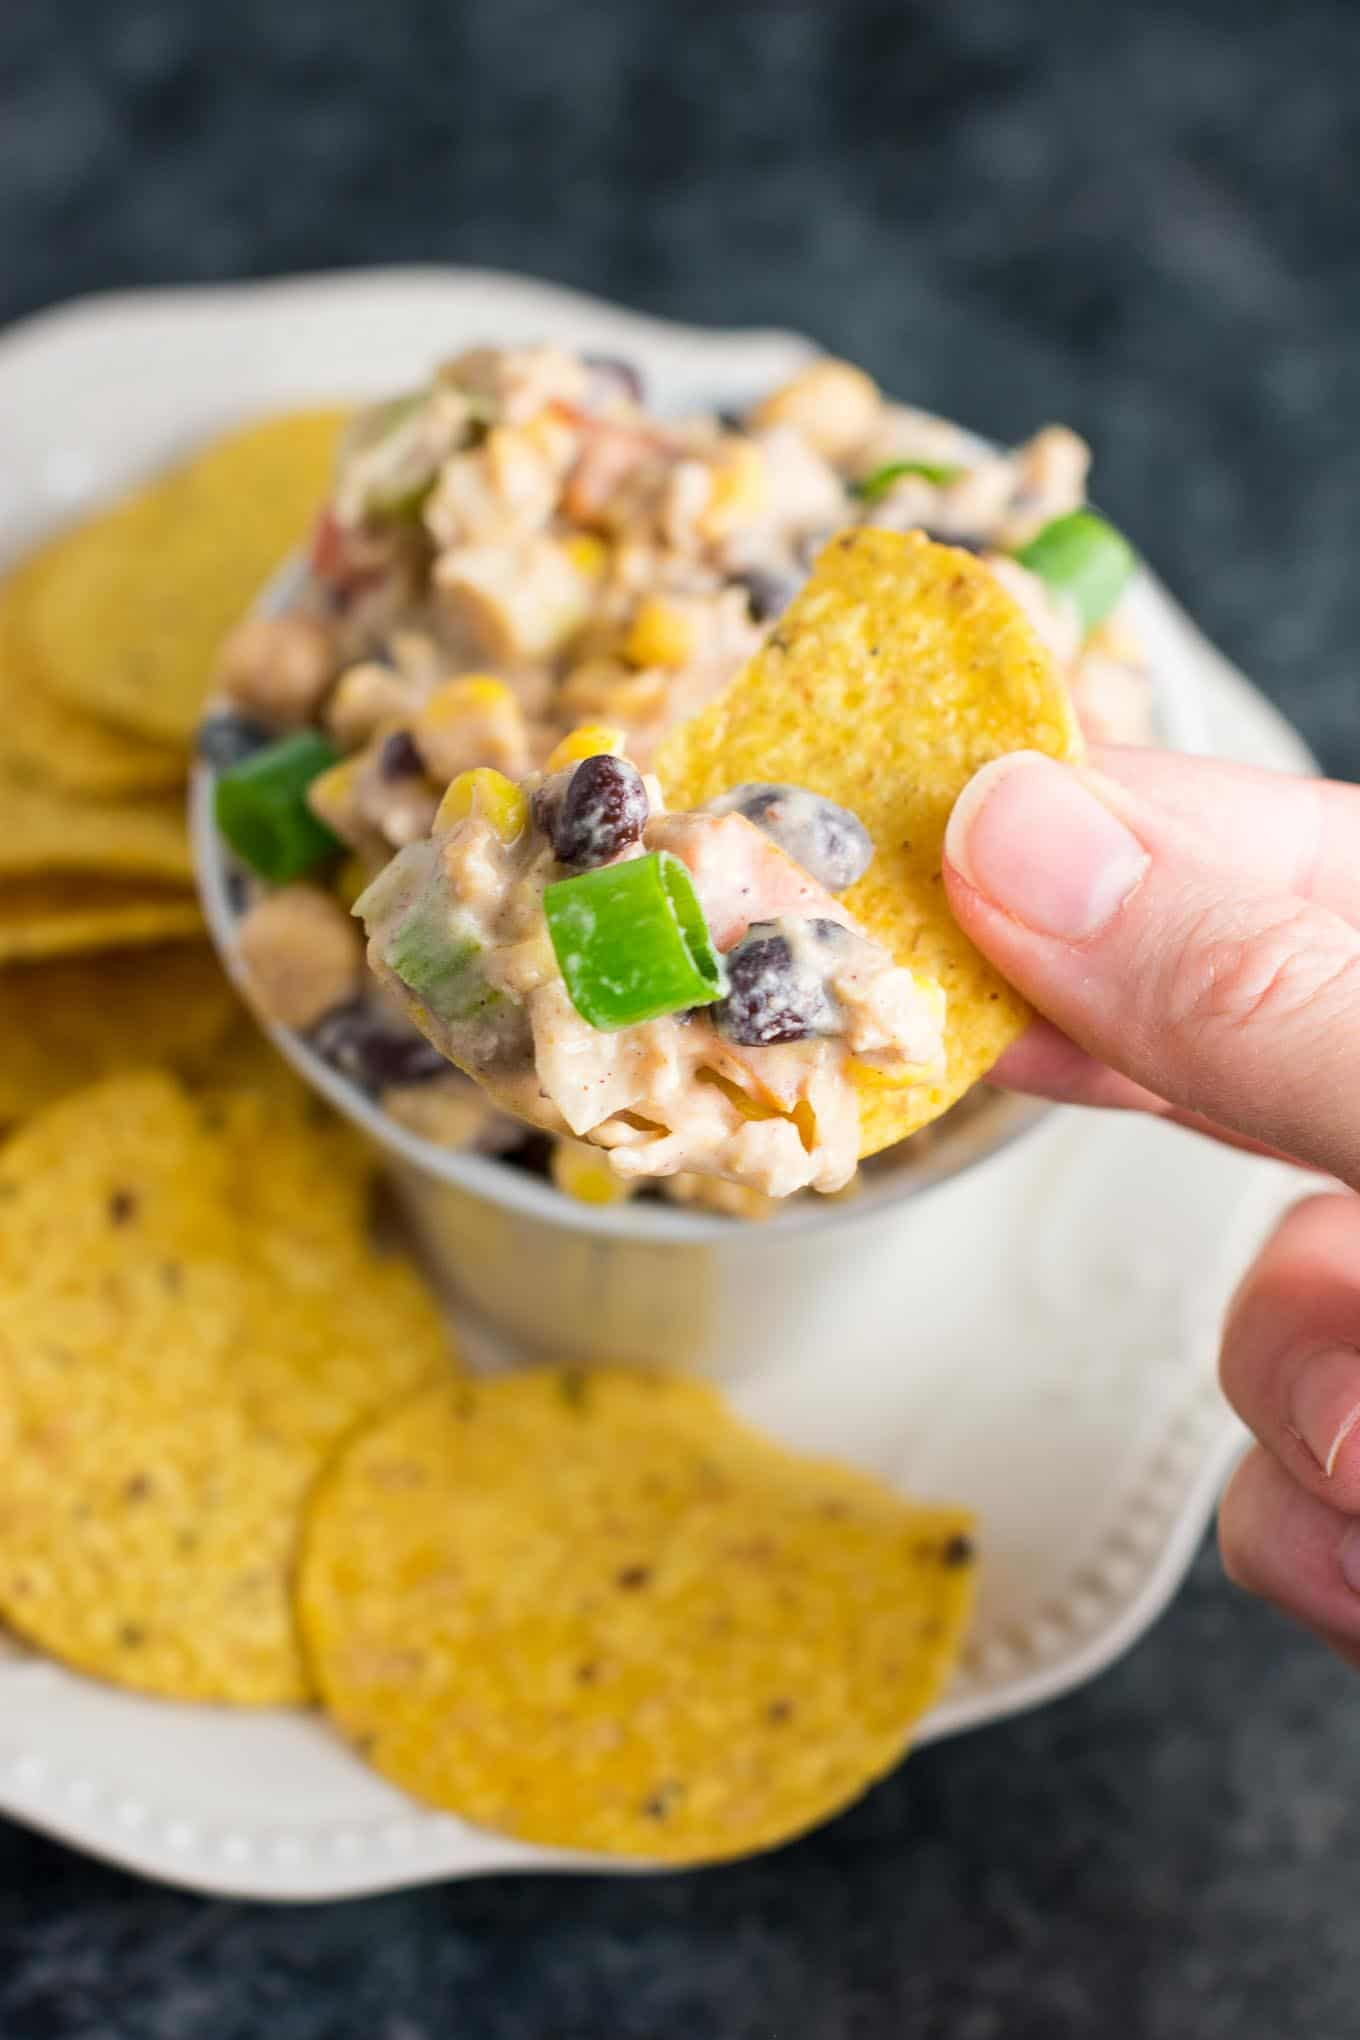 vegetarian mexican recipes: skinny mexican chickpea salad dip - recipe via @buildyourbite